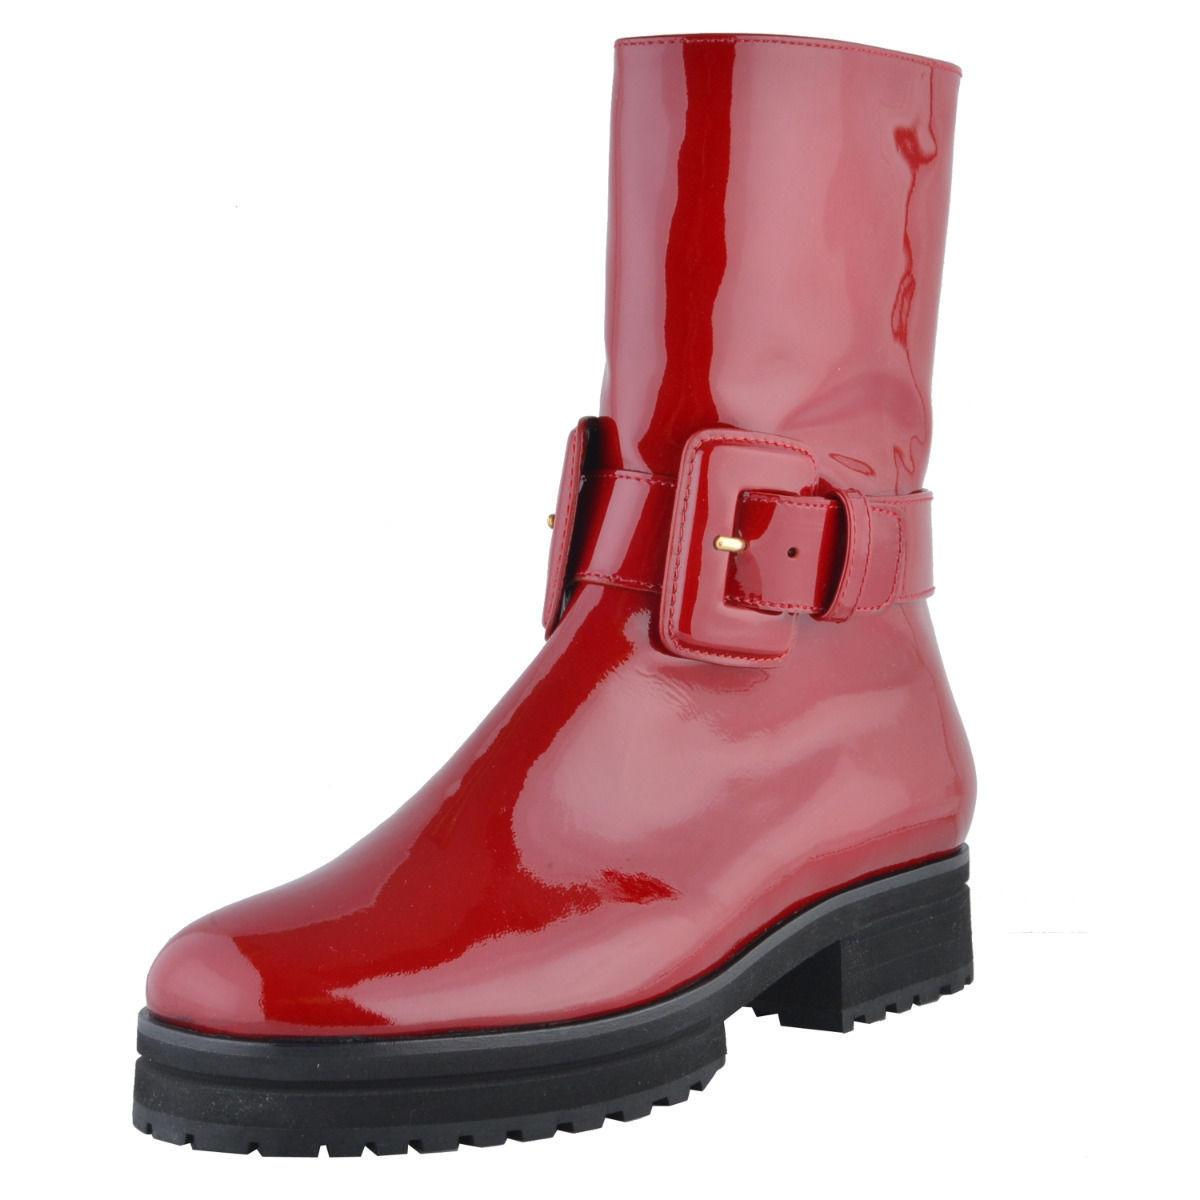 VIKTOR & ROLF Cherry Calf Red Patent Leather Mid Calf Cherry Boots/Booties Size US 8.5 Regular (M, B) 3dd262